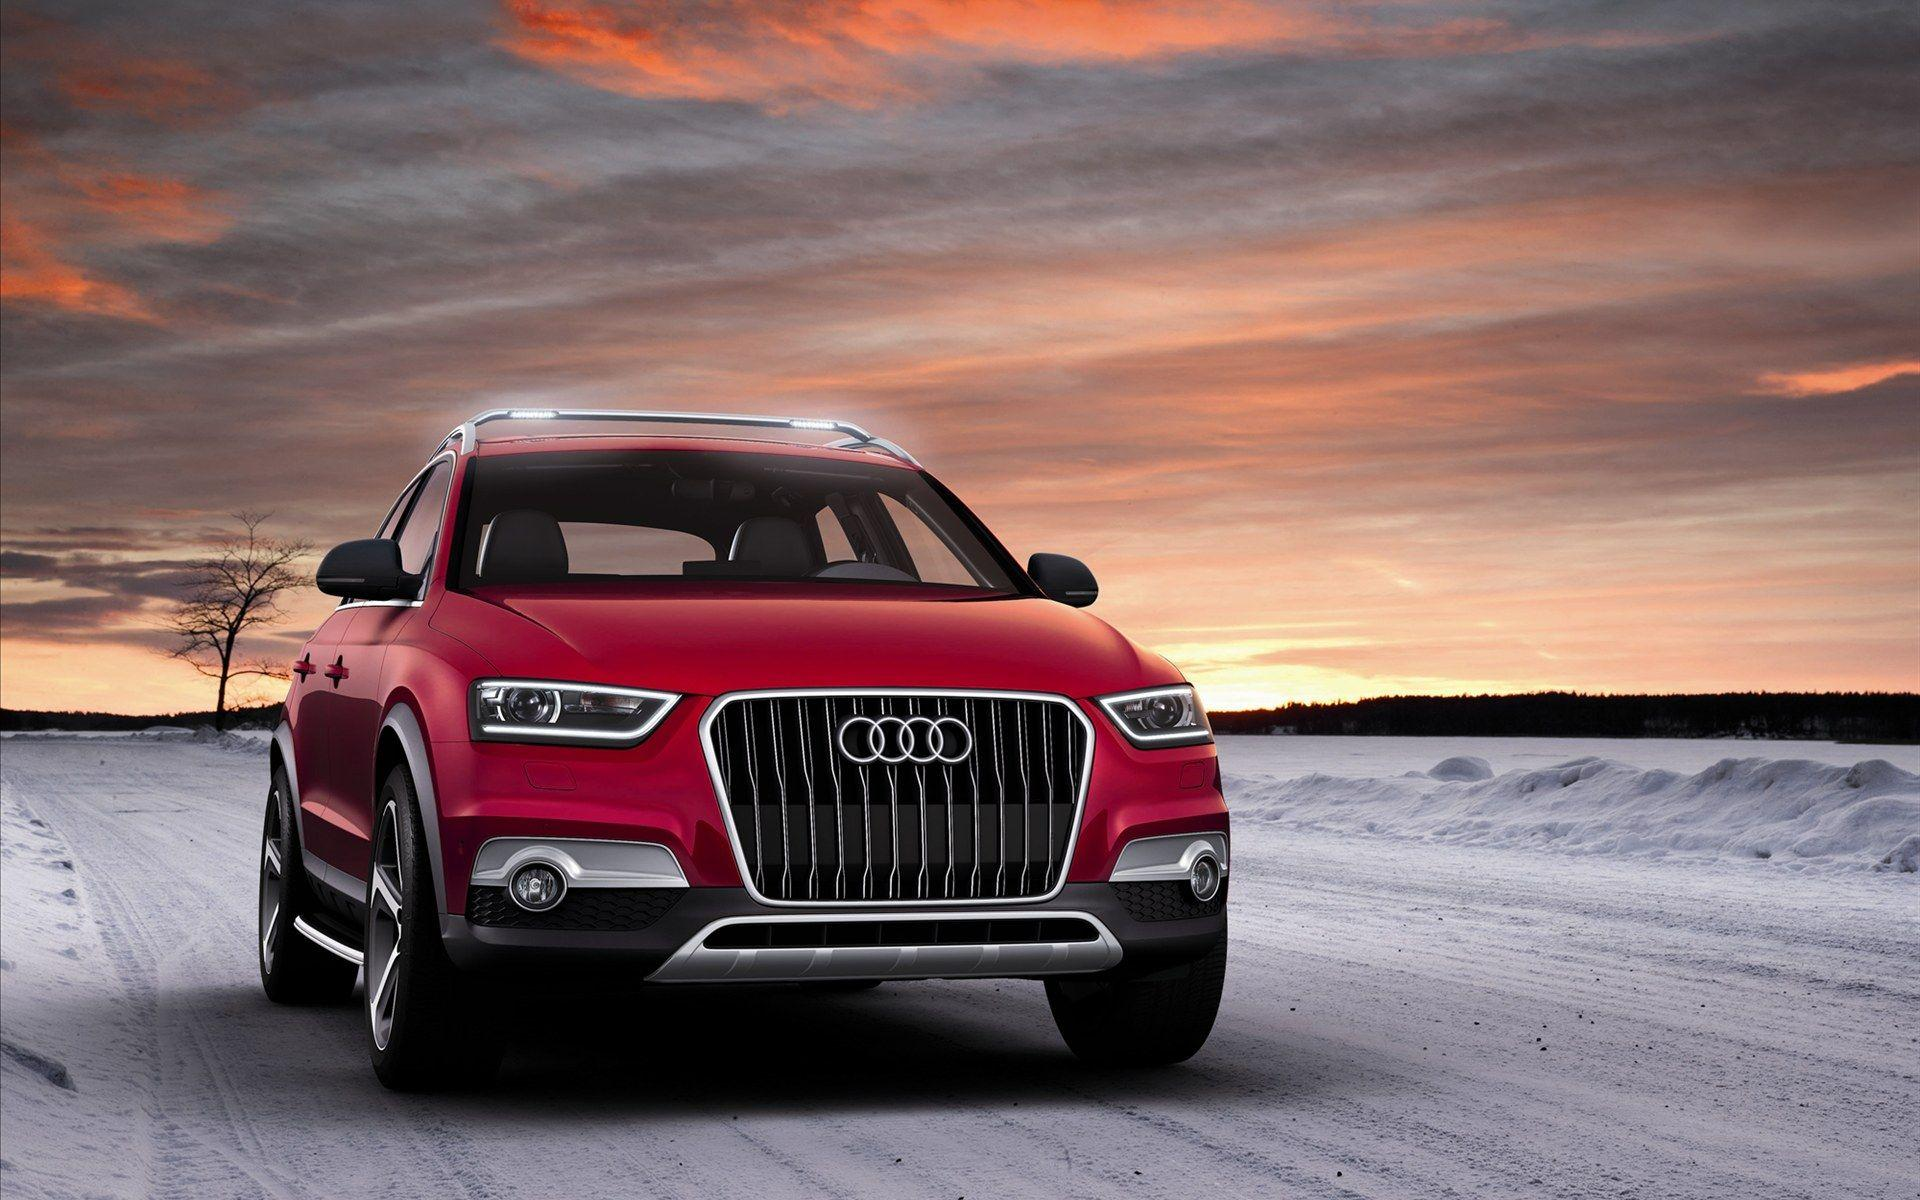 Audi Q3 Vail 2012 3 Wallpapers